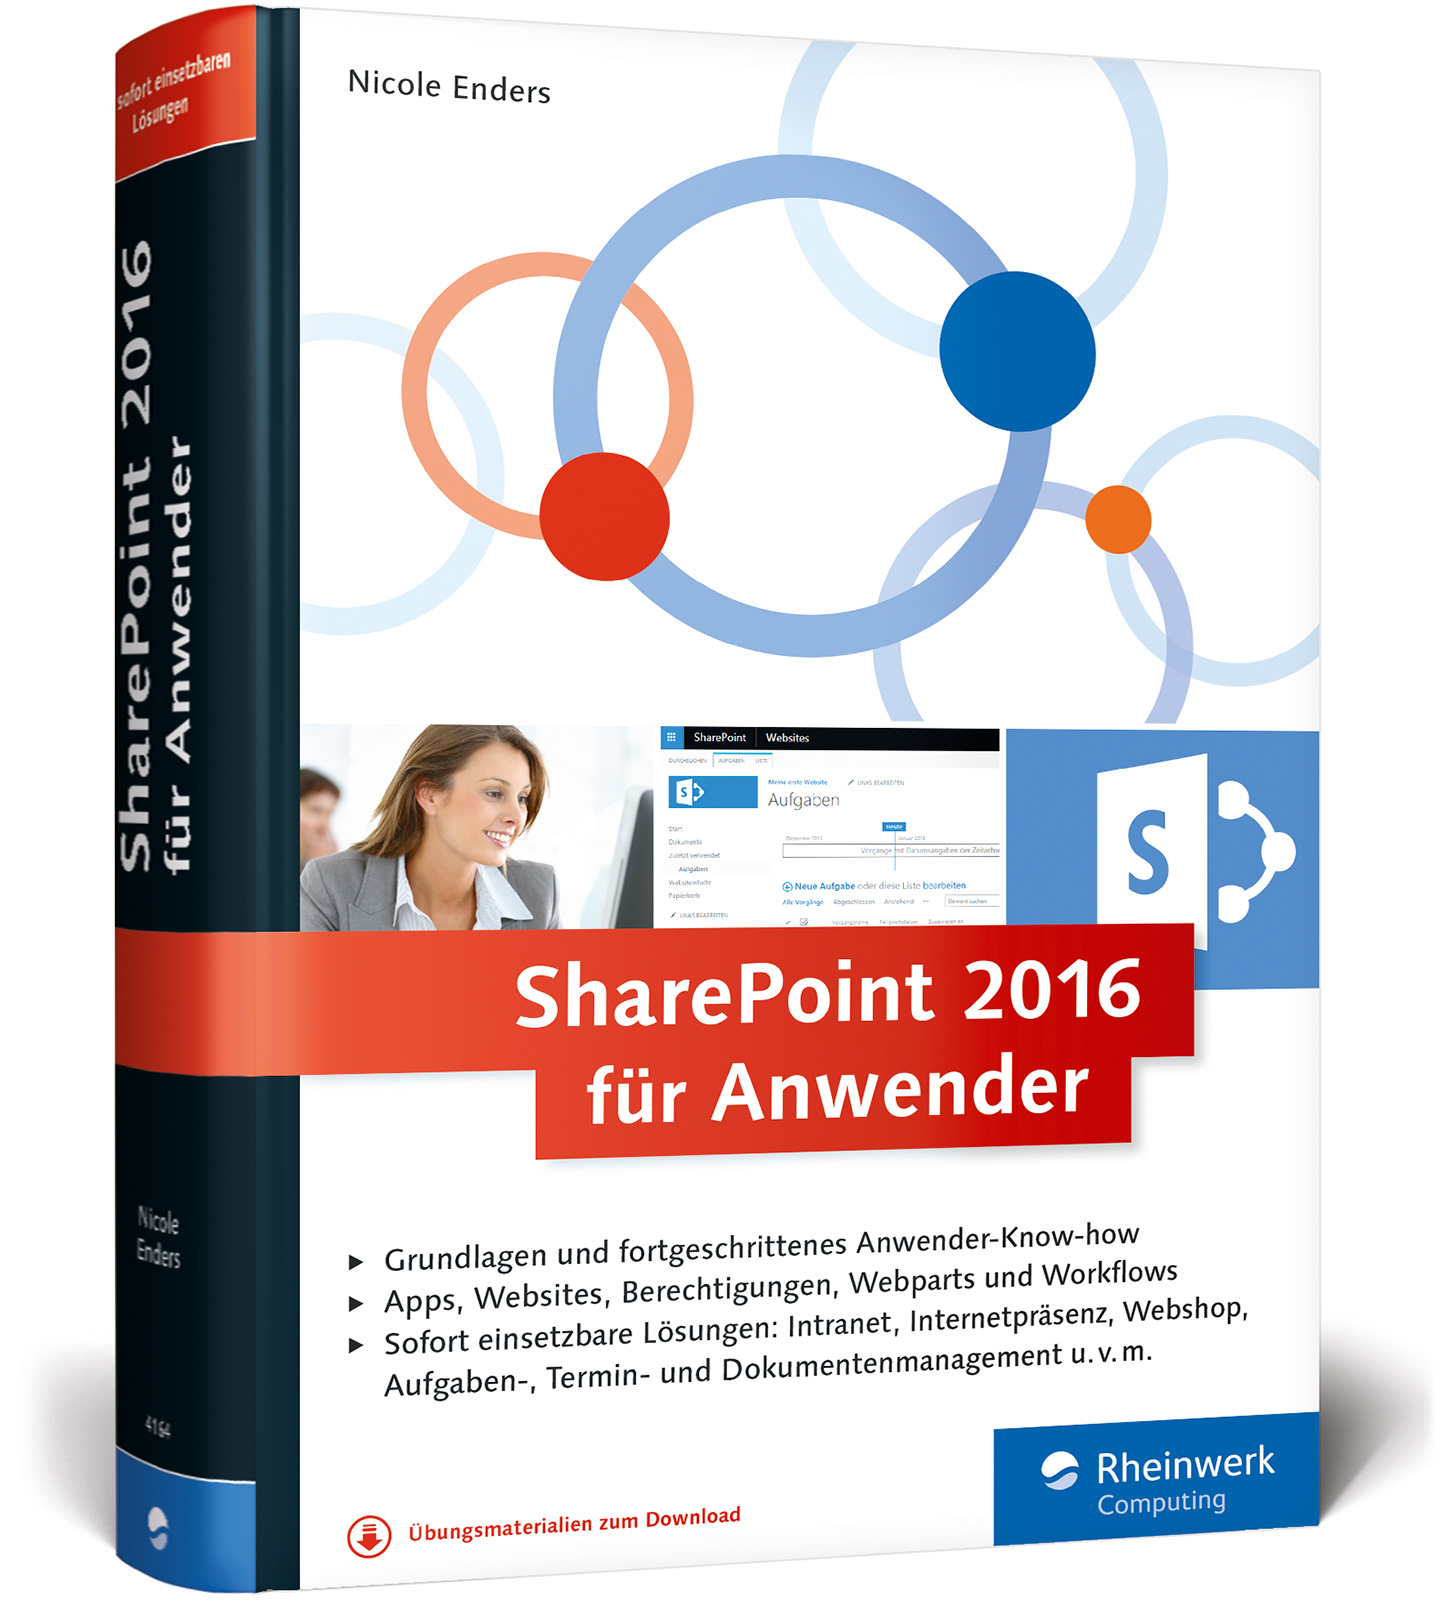 NEU-SharePoint-2016-fuer-Anwender-Nicole-Enders-241649